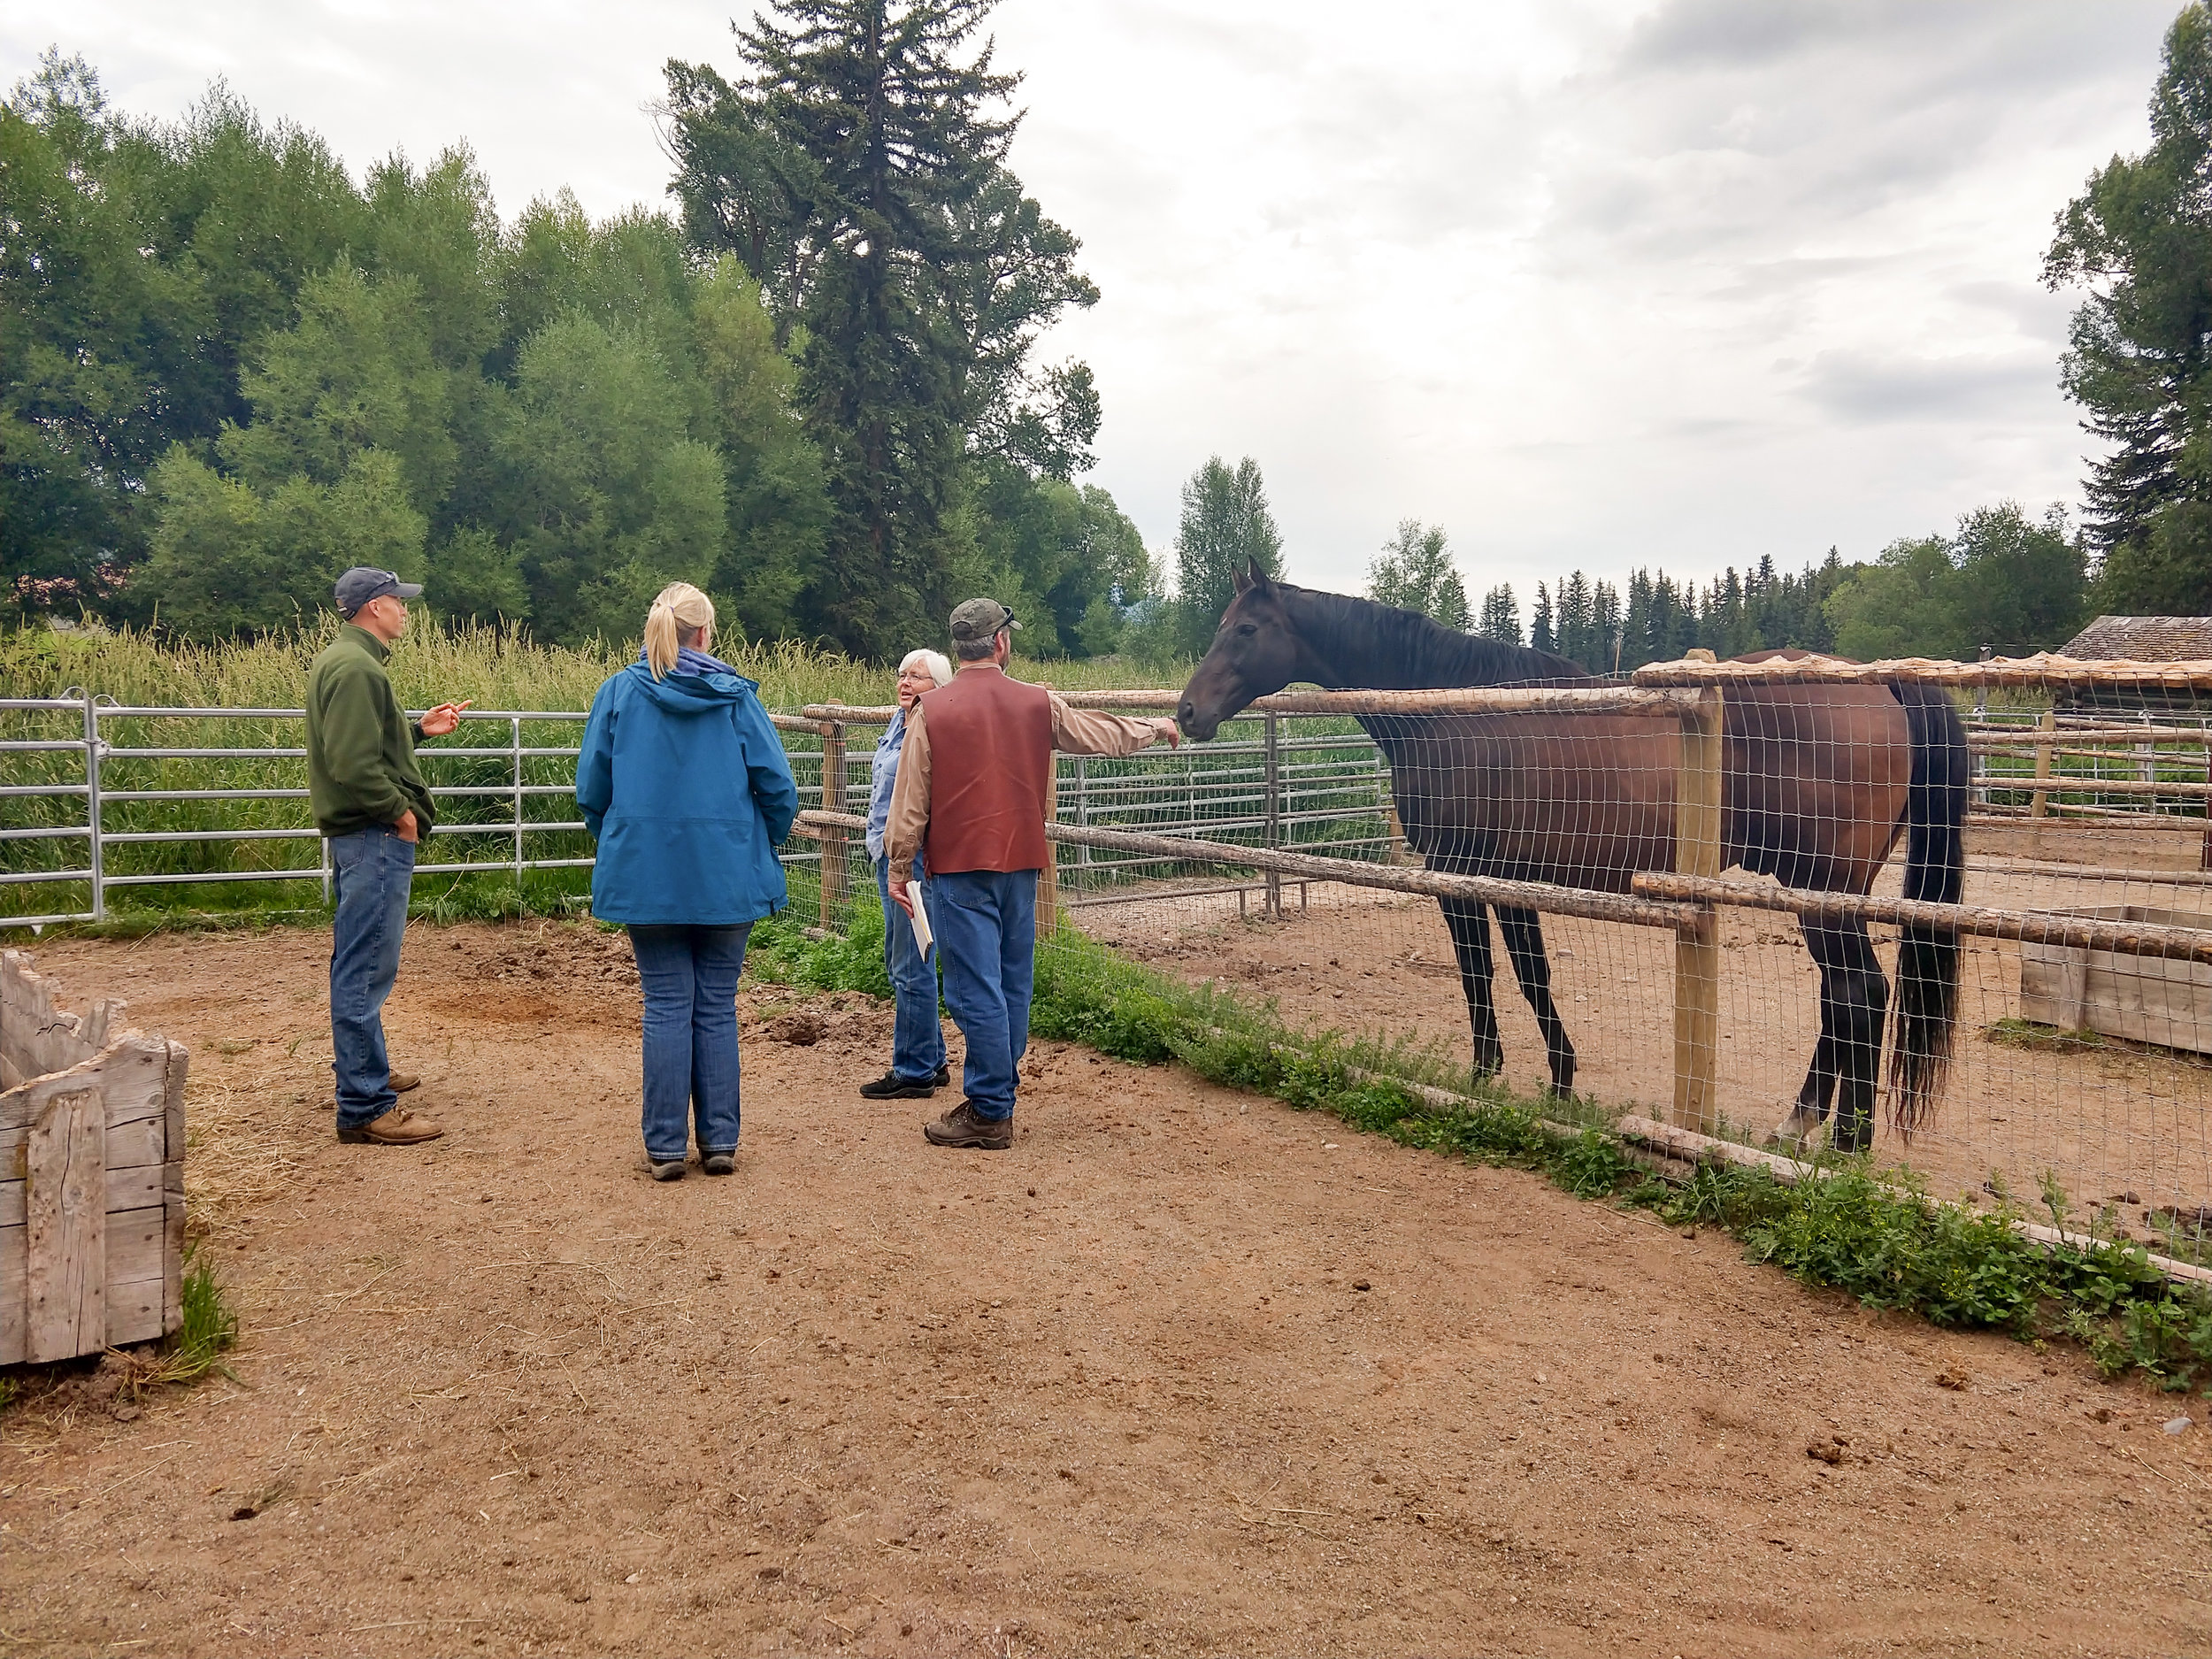 Alayne and Teton Conservation District staff visiting Crane Creek Ranch.